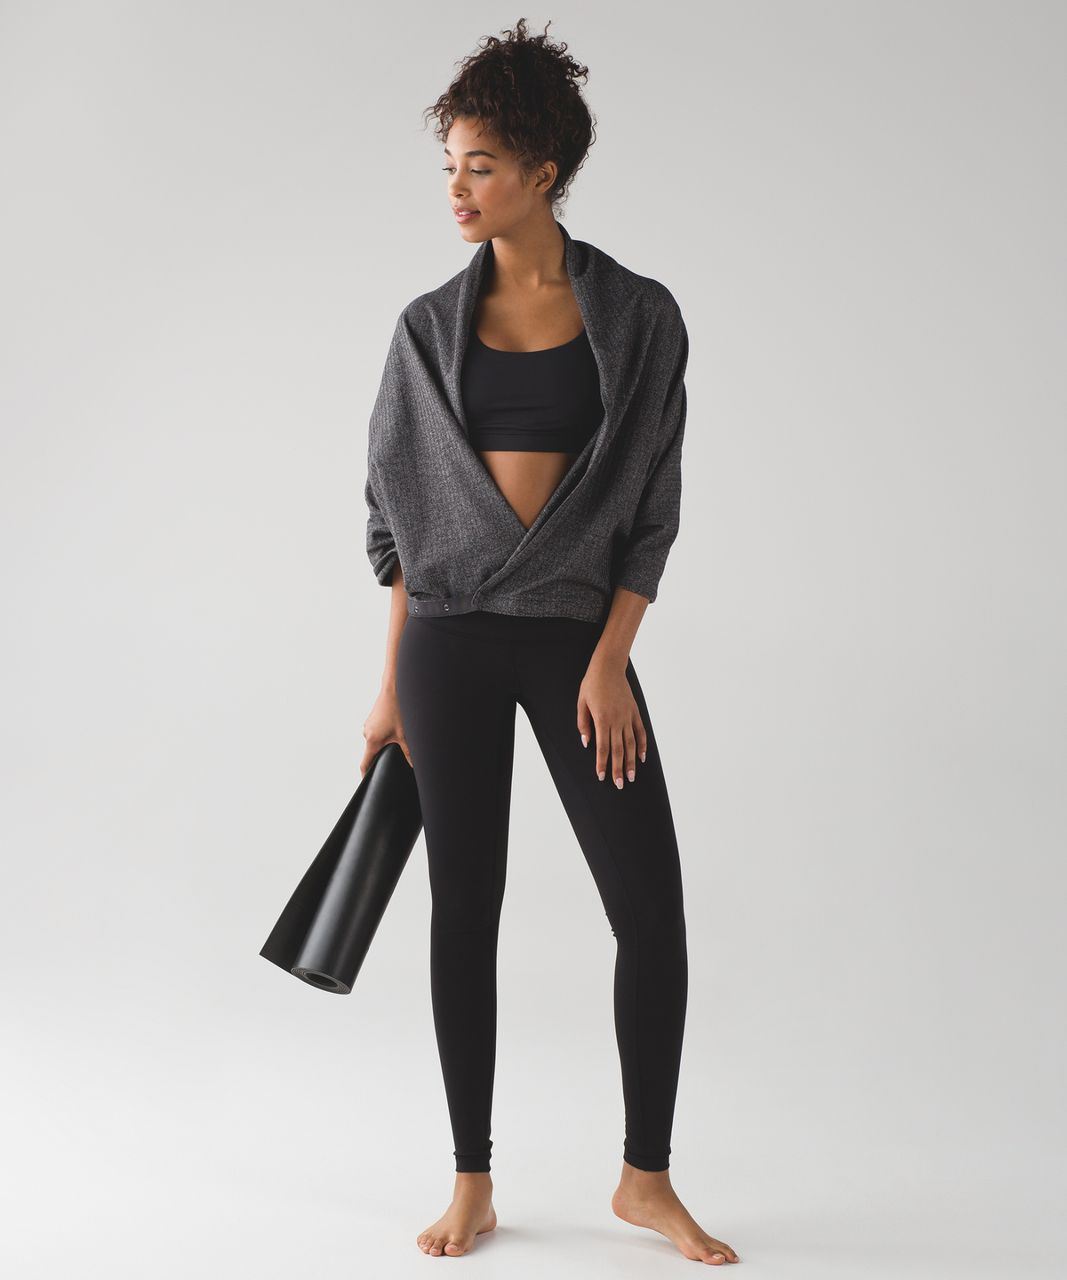 Lululemon Vinyasa Scarf *Rulu - Heathered Herringbone Heathered Black Black